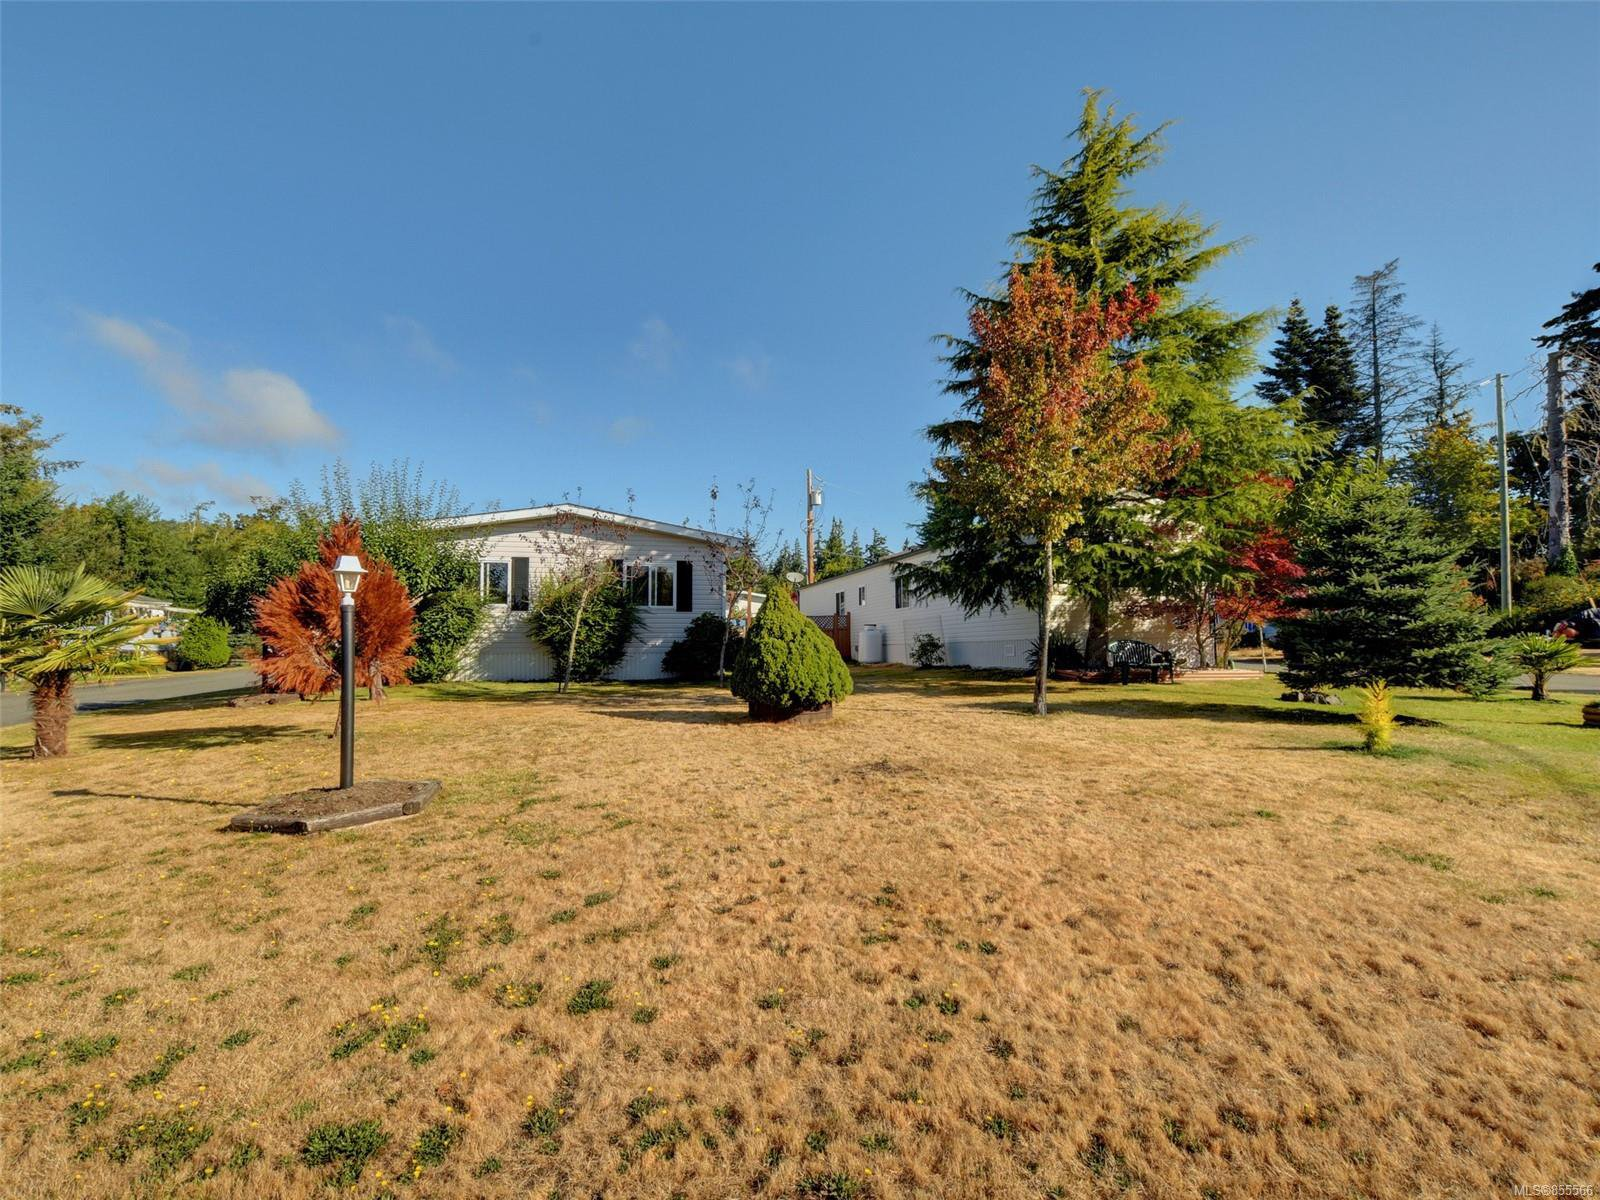 Photo 22: Photos: 28 7021 W Grant Rd in : Sk John Muir Manufactured Home for sale (Sooke)  : MLS®# 855566